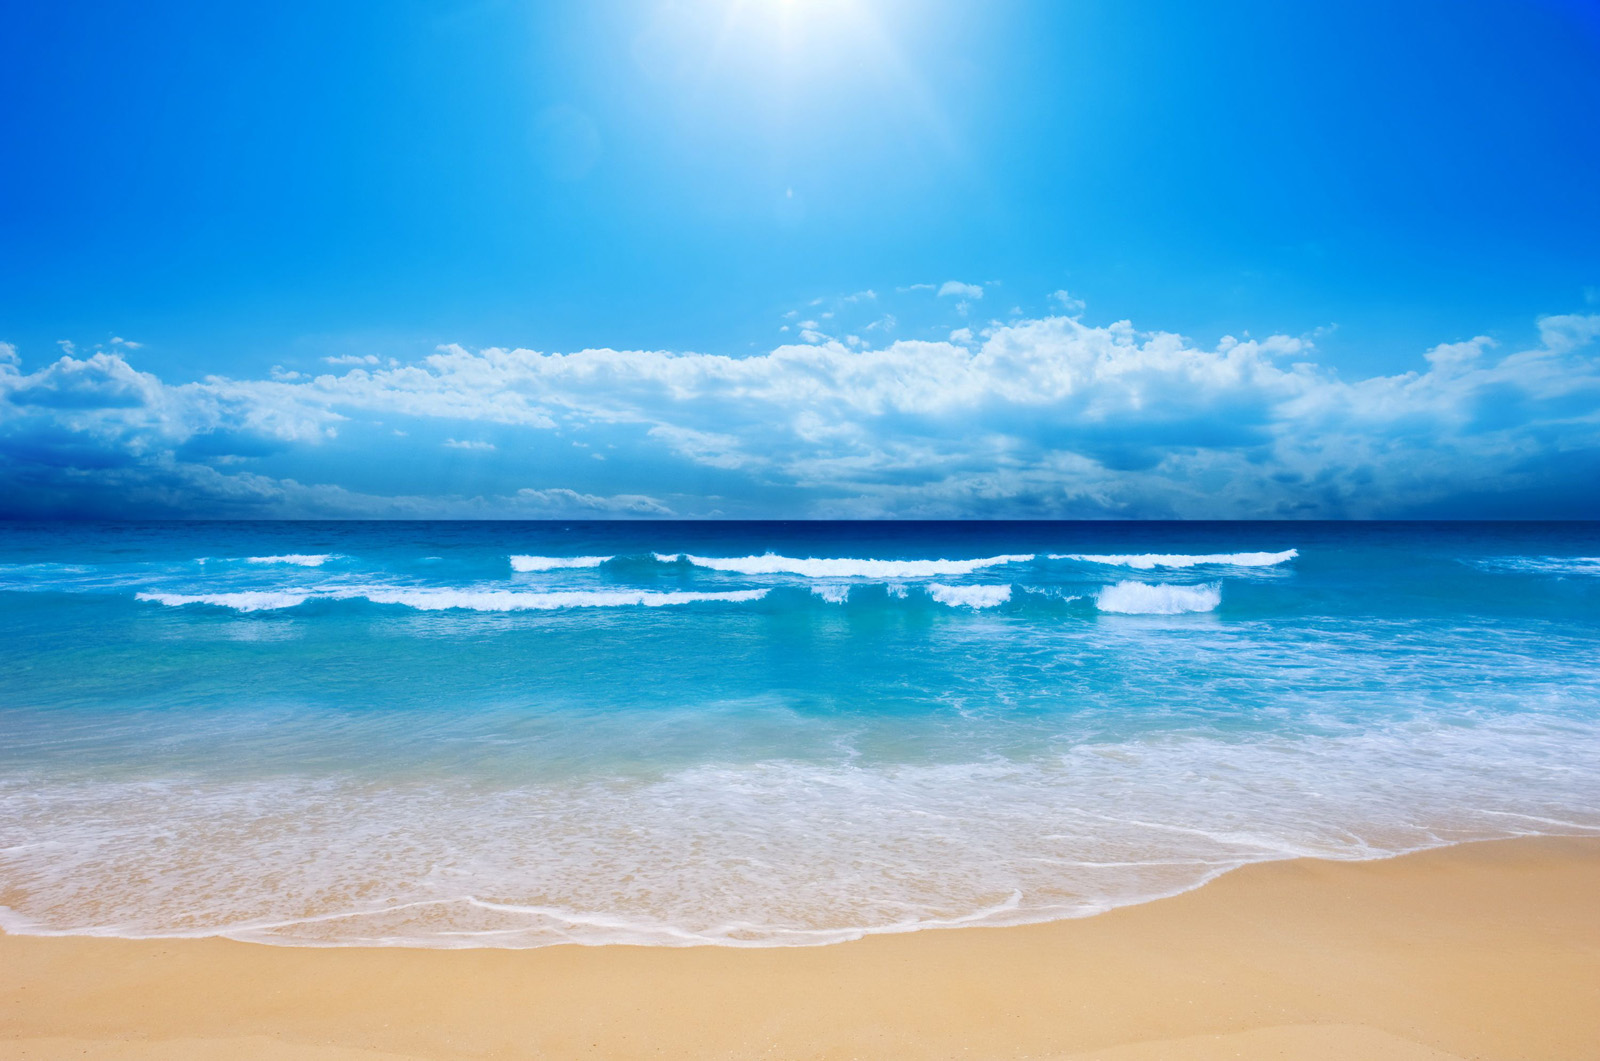 desktop backgrounds beach | wallpaper now